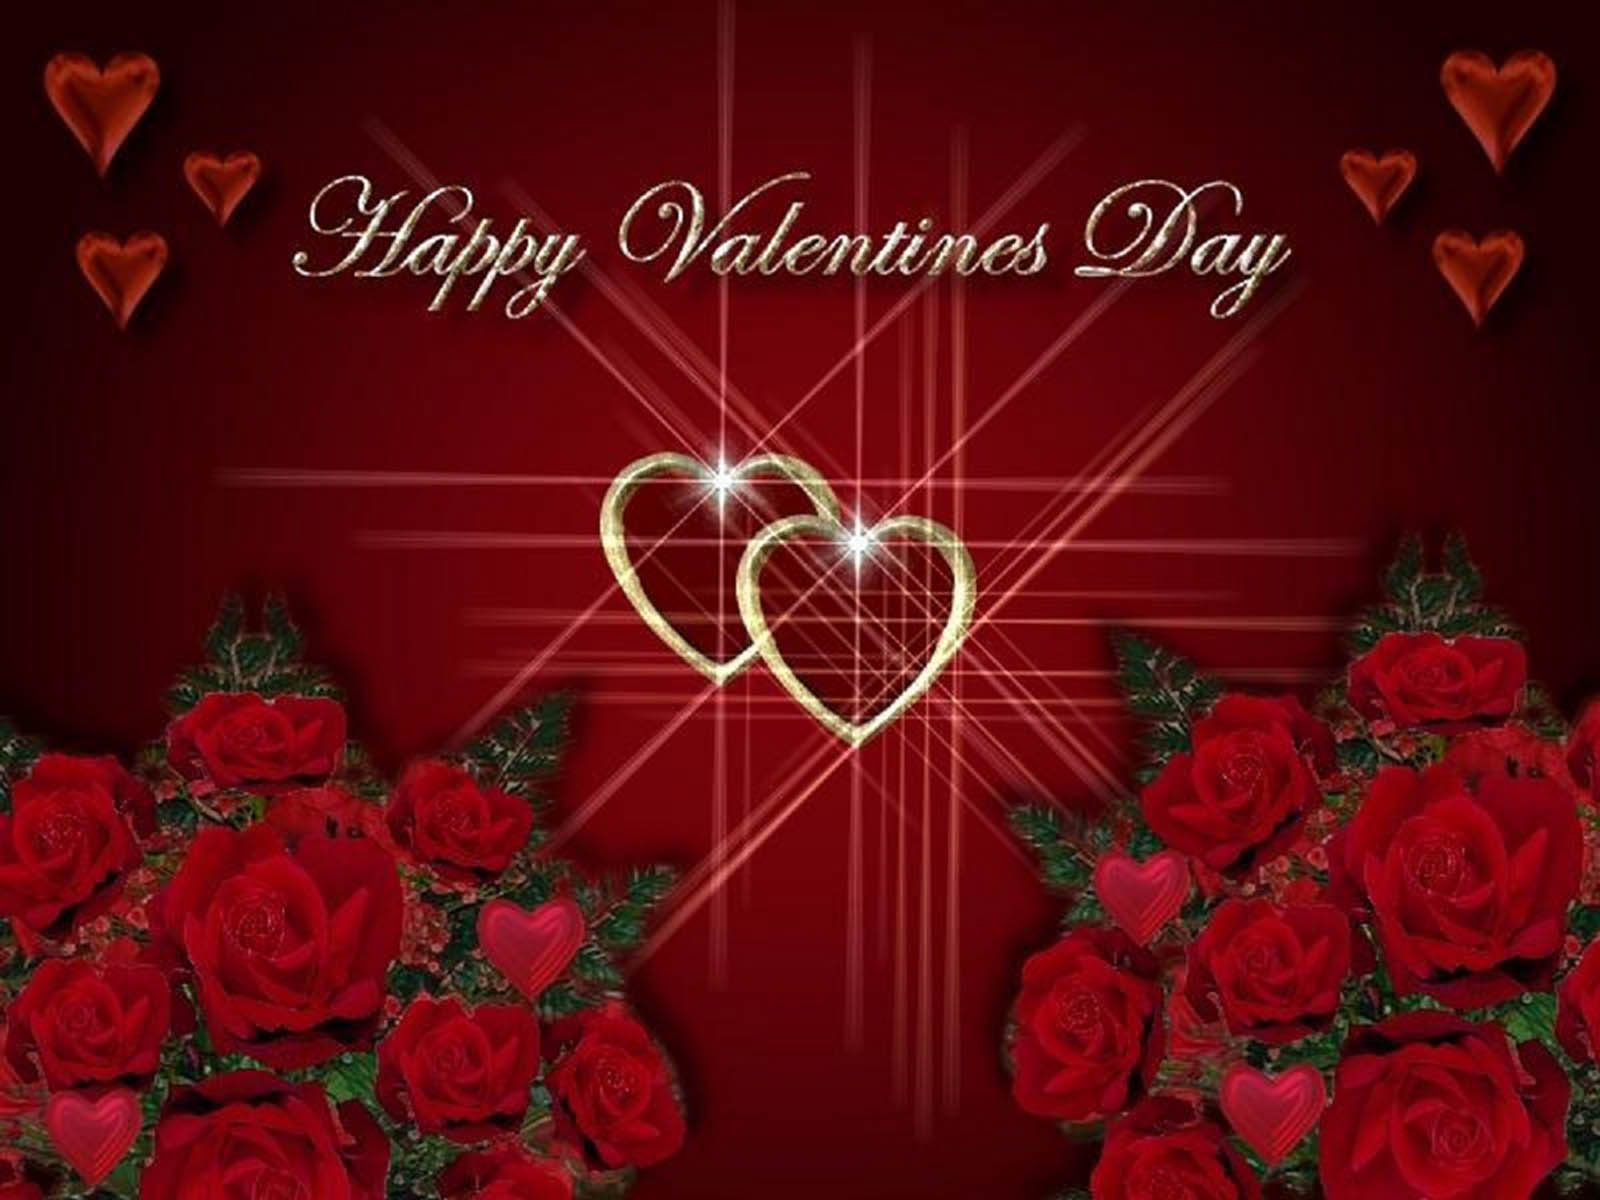 Wallpapers Valentines Day Desktop Backgrounds Valentines Day Photos 1600x1200